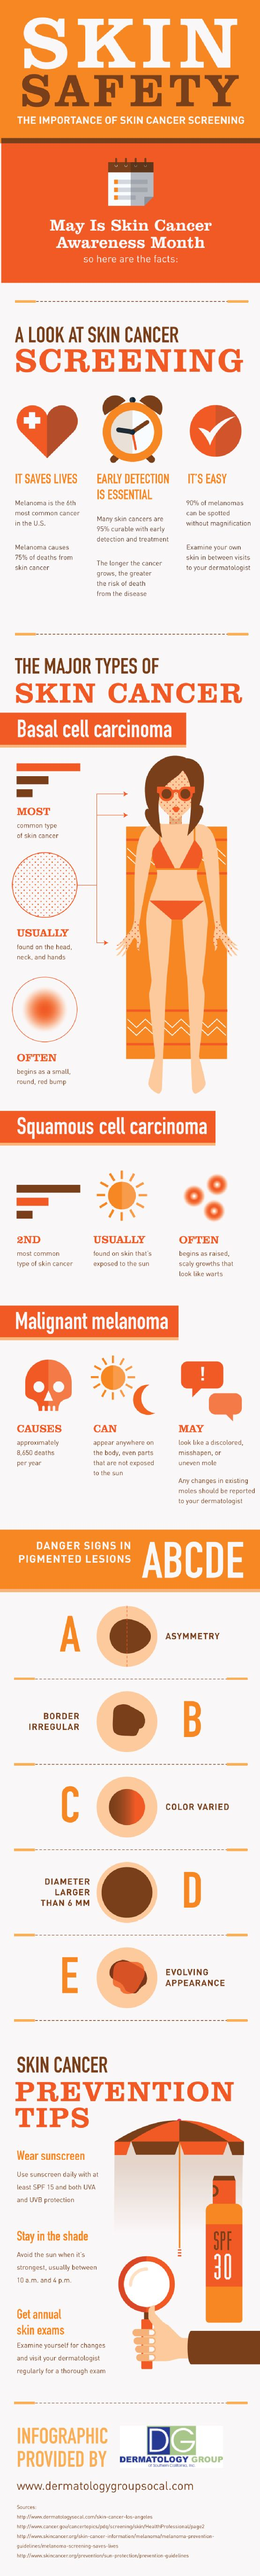 Skin Safety: The Importance of Skin Cancer Screening ...........Malignant melanoma causes approximately 8,650 deaths per year. This type of skin cancer can appear anywhere on the body, even parts that are not exposed to the sun.